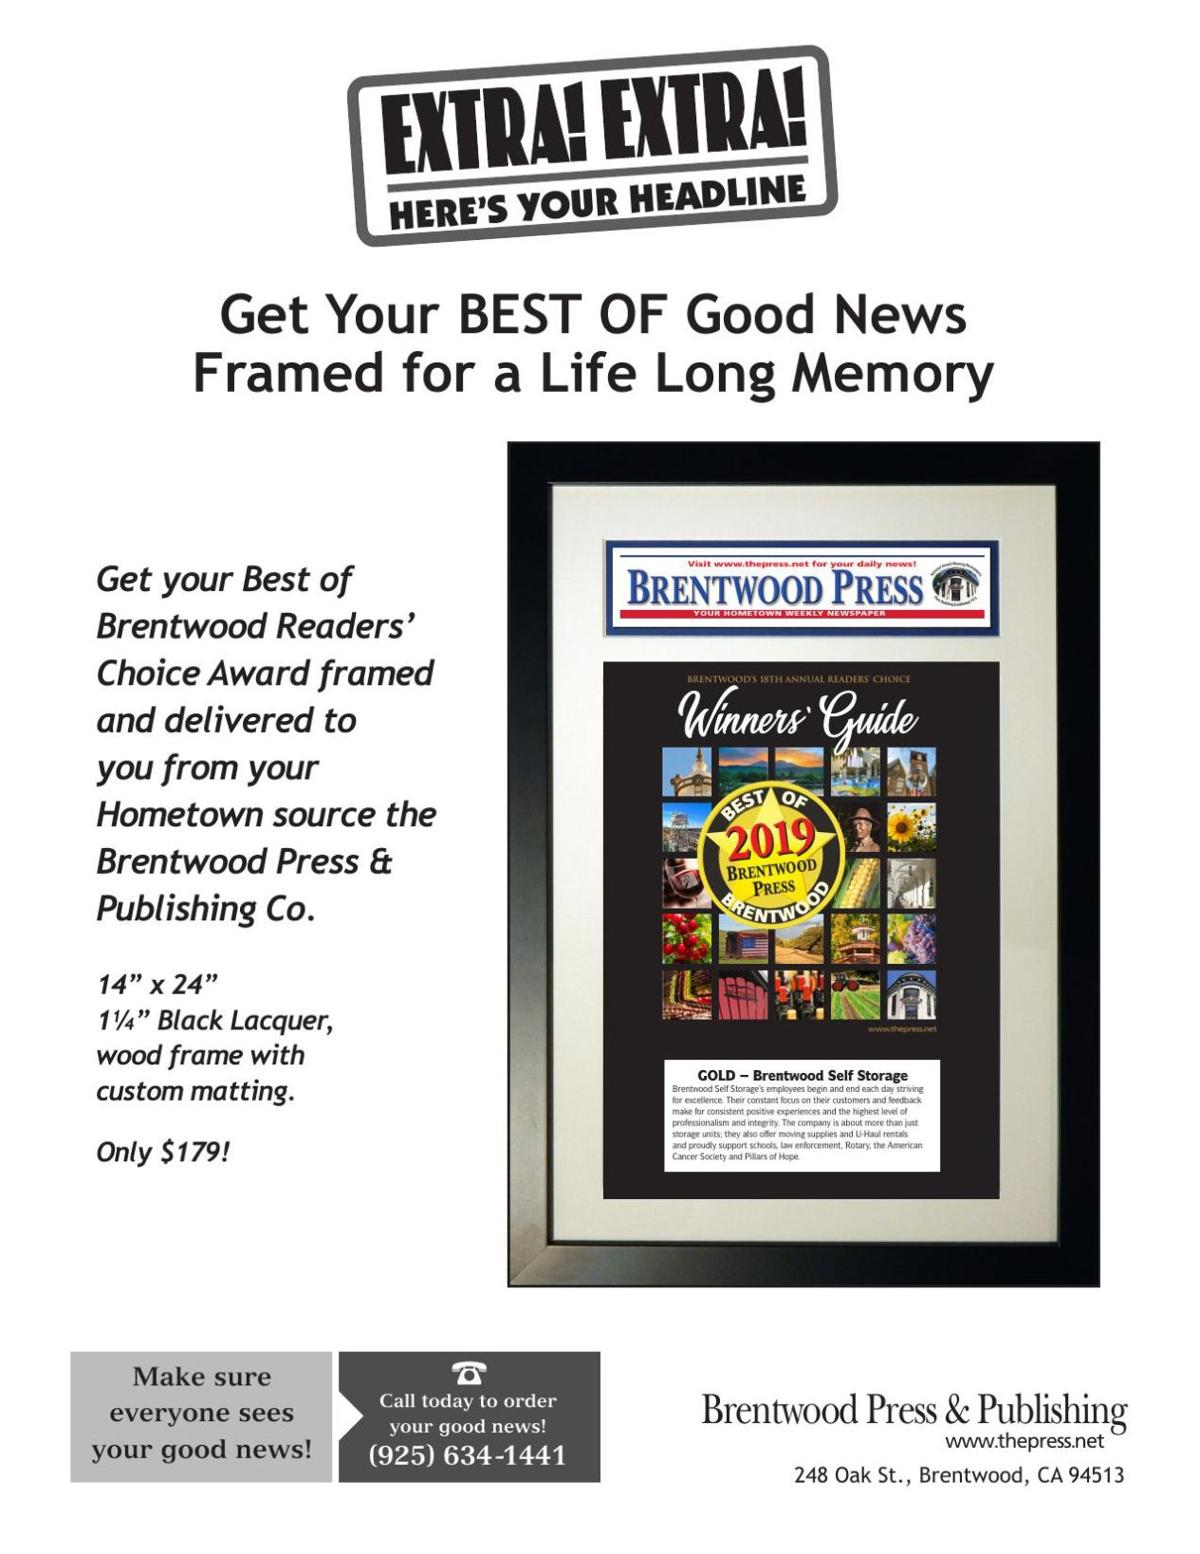 Get your Best of Brentwood Readers' Choice Award framed!